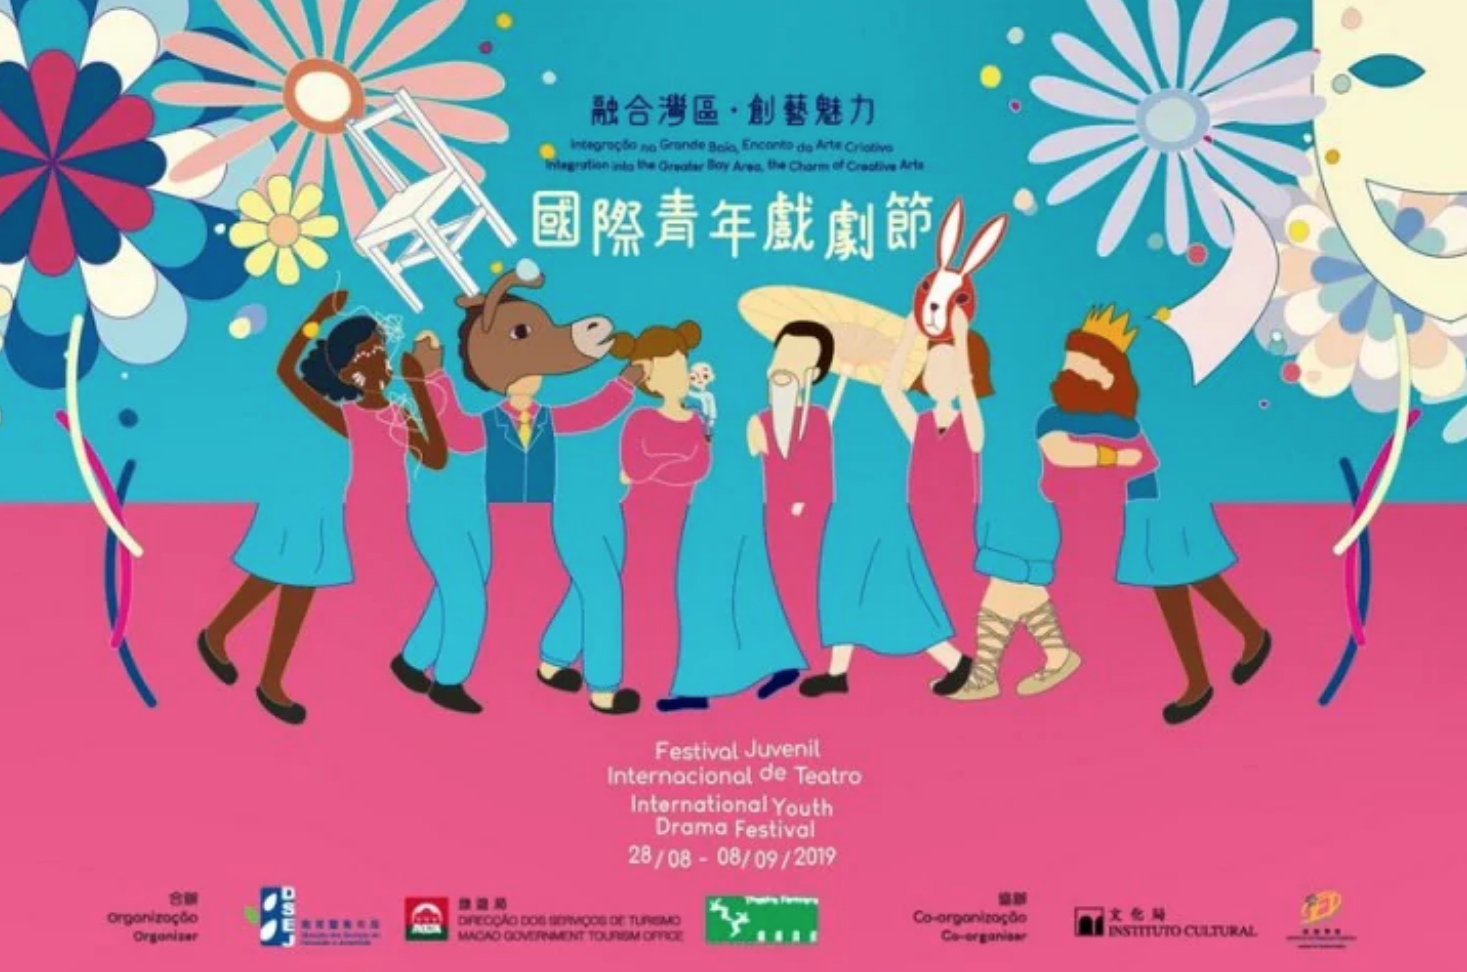 youth drama festival 2019 art macao